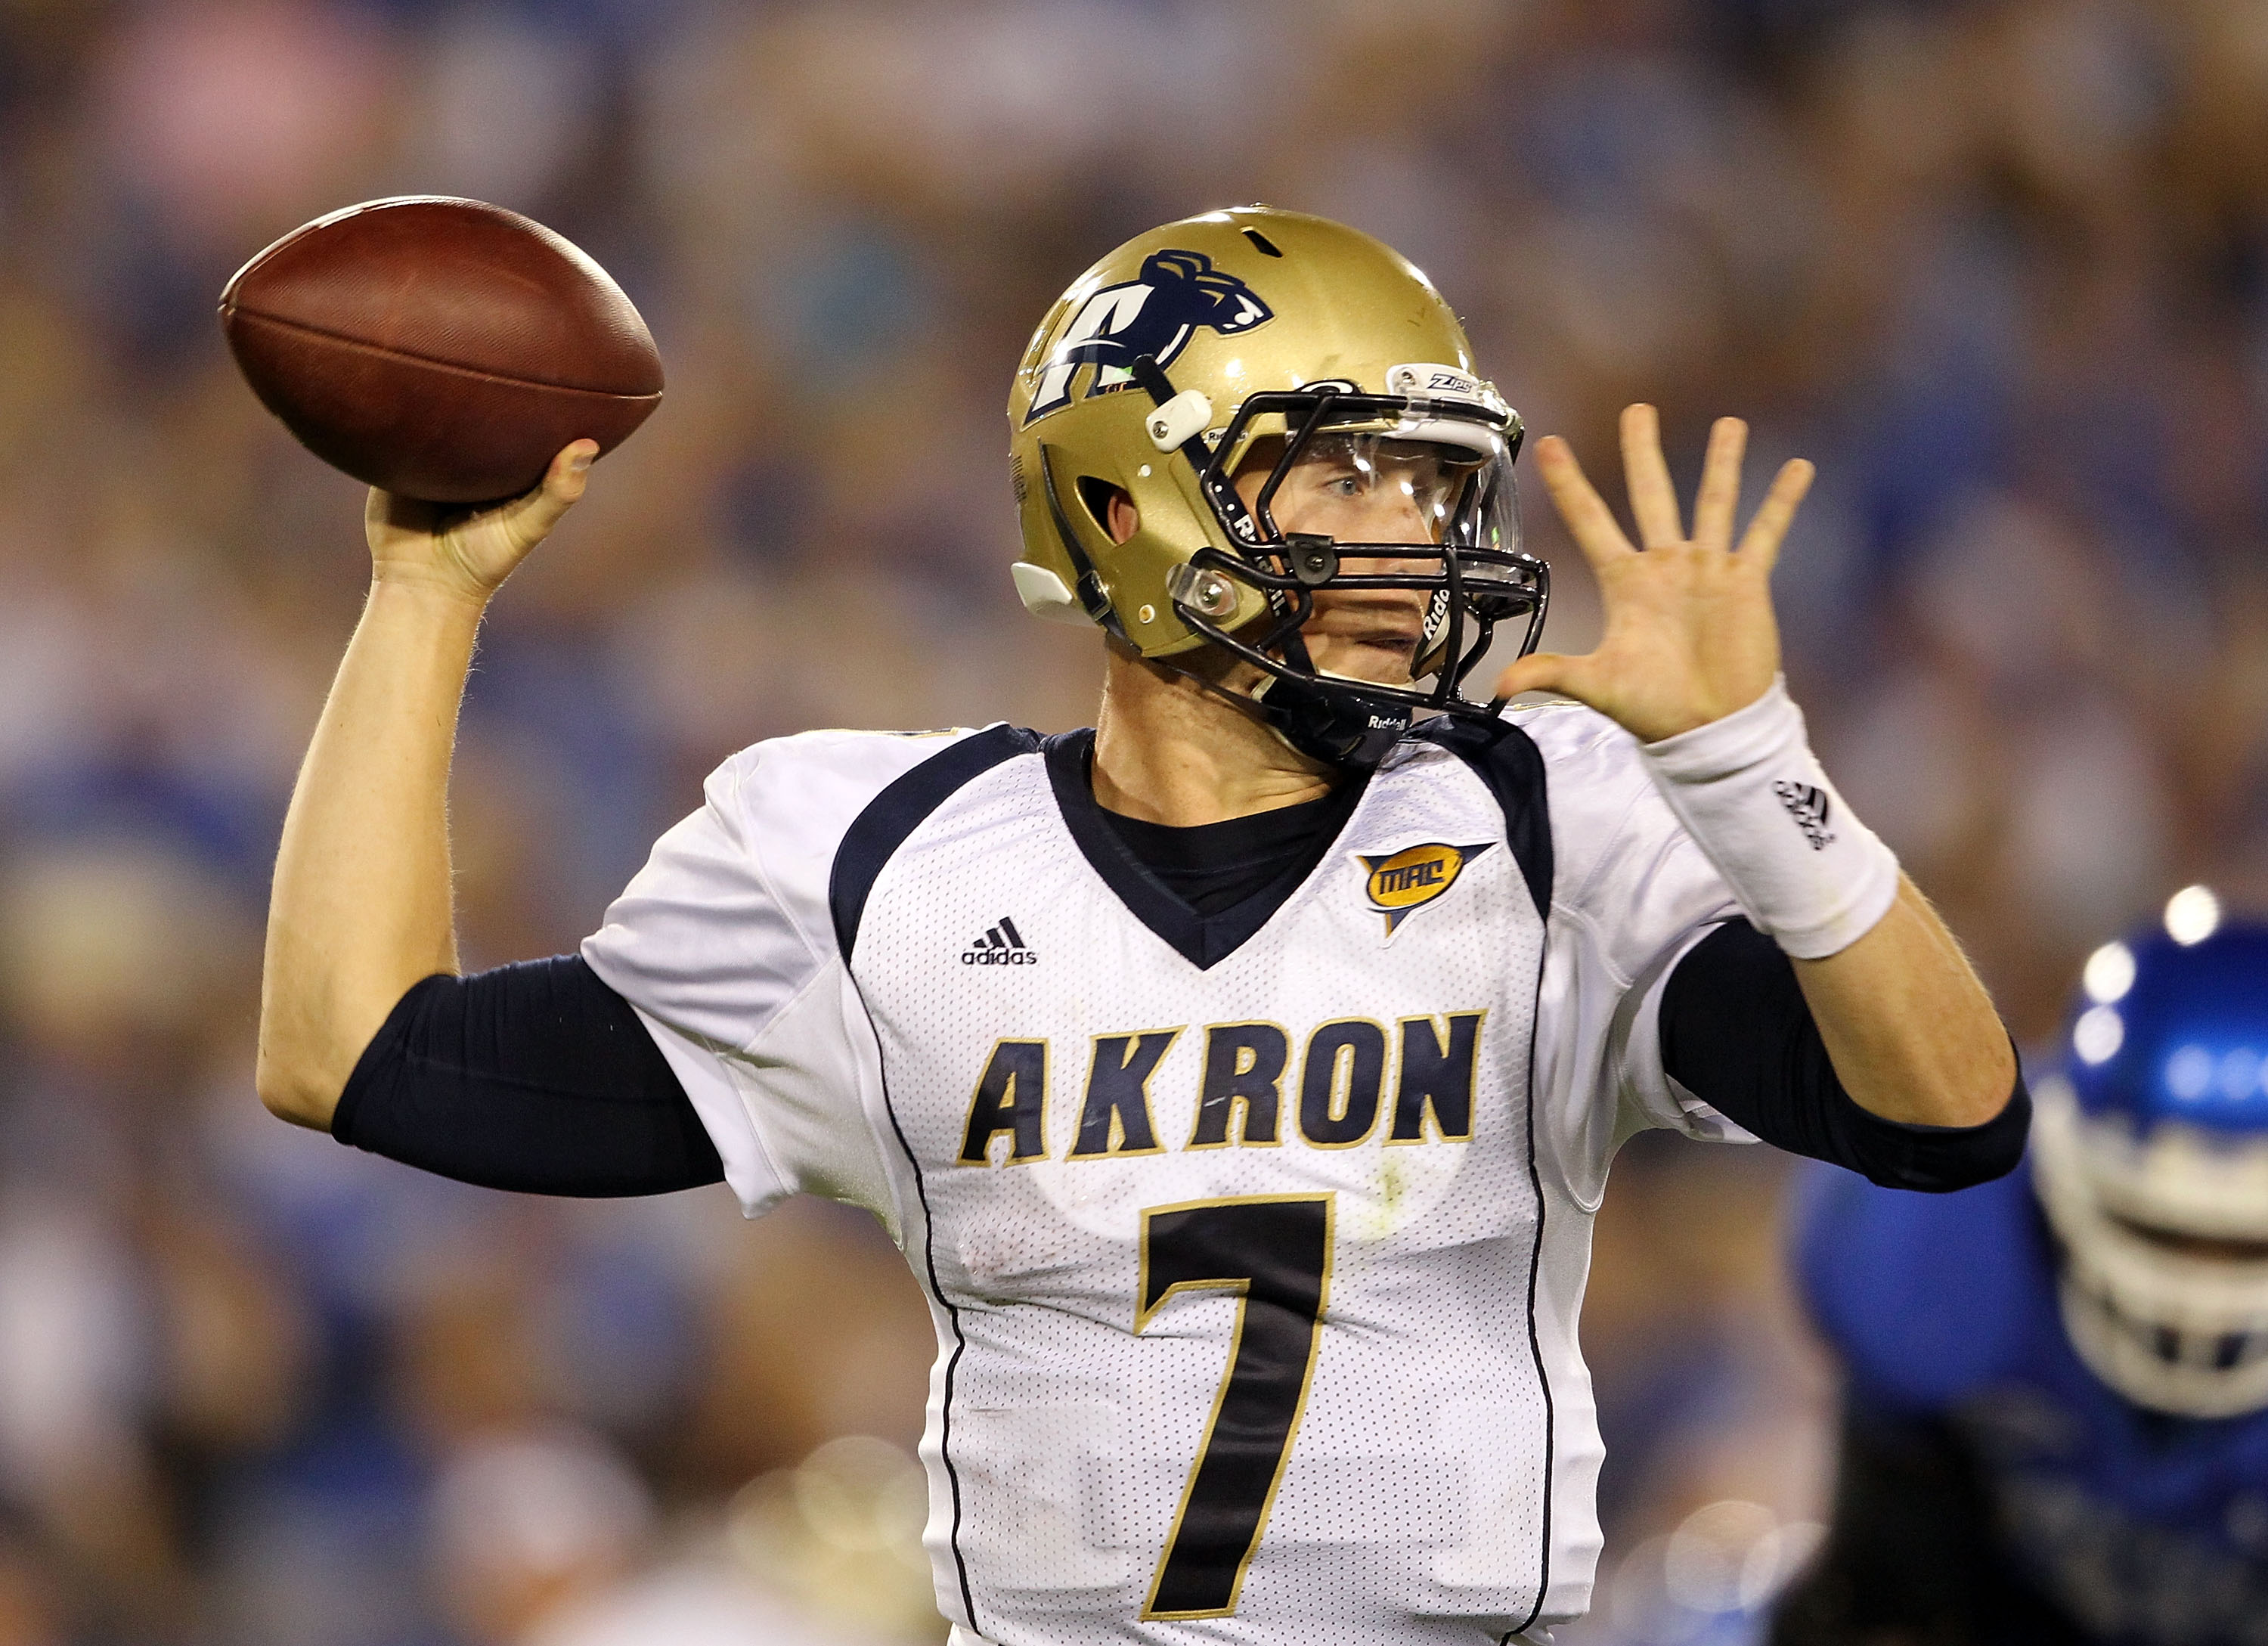 LEXINGTON, KY - SEPTEMBER 18:  Patrick Nicely #7 of the Akron Zips throws the ball during the game against the Kentucky Wildcats at Commonwealth Stadium on September 18, 2010 in Lexington, Kentucky.  (Photo by Andy Lyons/Getty Images)